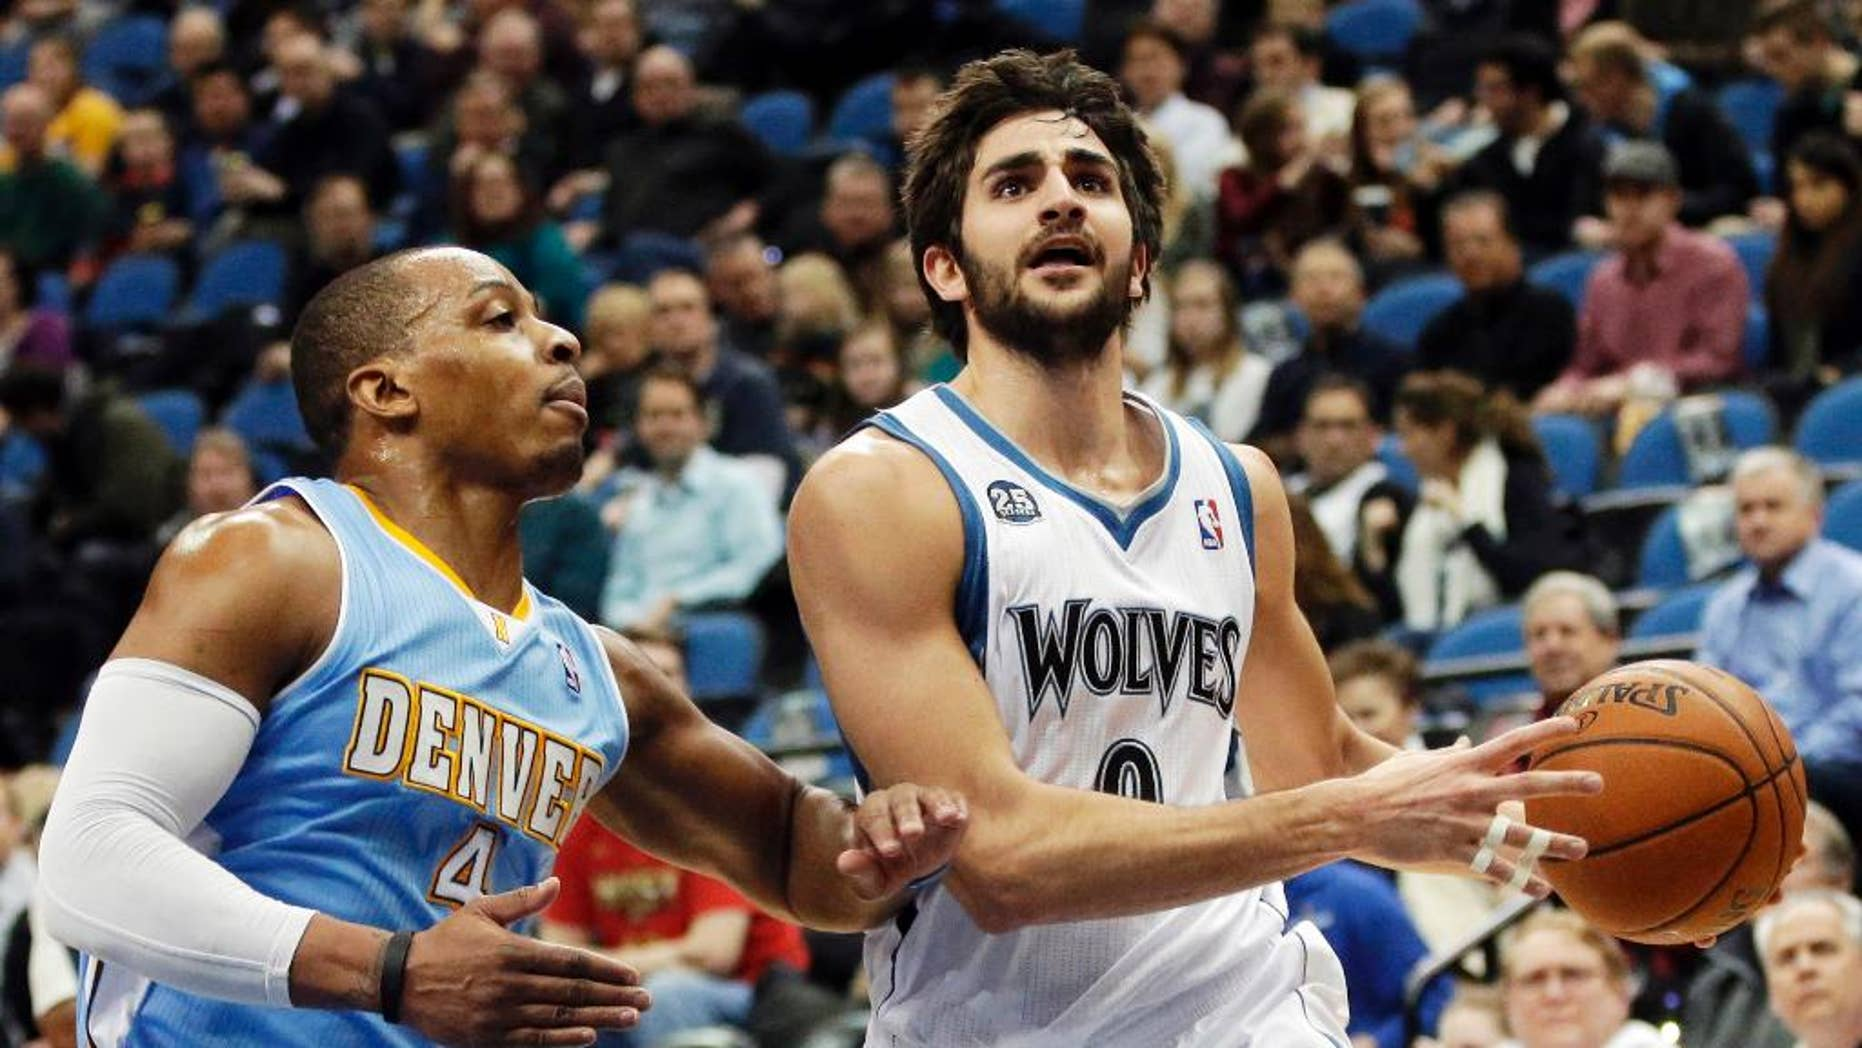 FILE - In this Feb. 12, 2014, file photo, Minnesota Timberwolves' Ricky Rubio, right, of Spain, lays up a shot as Denver Nuggets's Randy Foye defends in the first quarter of an NBA basketball game in Minneapolis. The clock is ticking on the  Timberwolves and Rubio to get an extension done. If the two sides don't reach agreement by Oct. 31, Rubio can become a restricted free agent next summer. (AP Photo/Jim Mone, File)